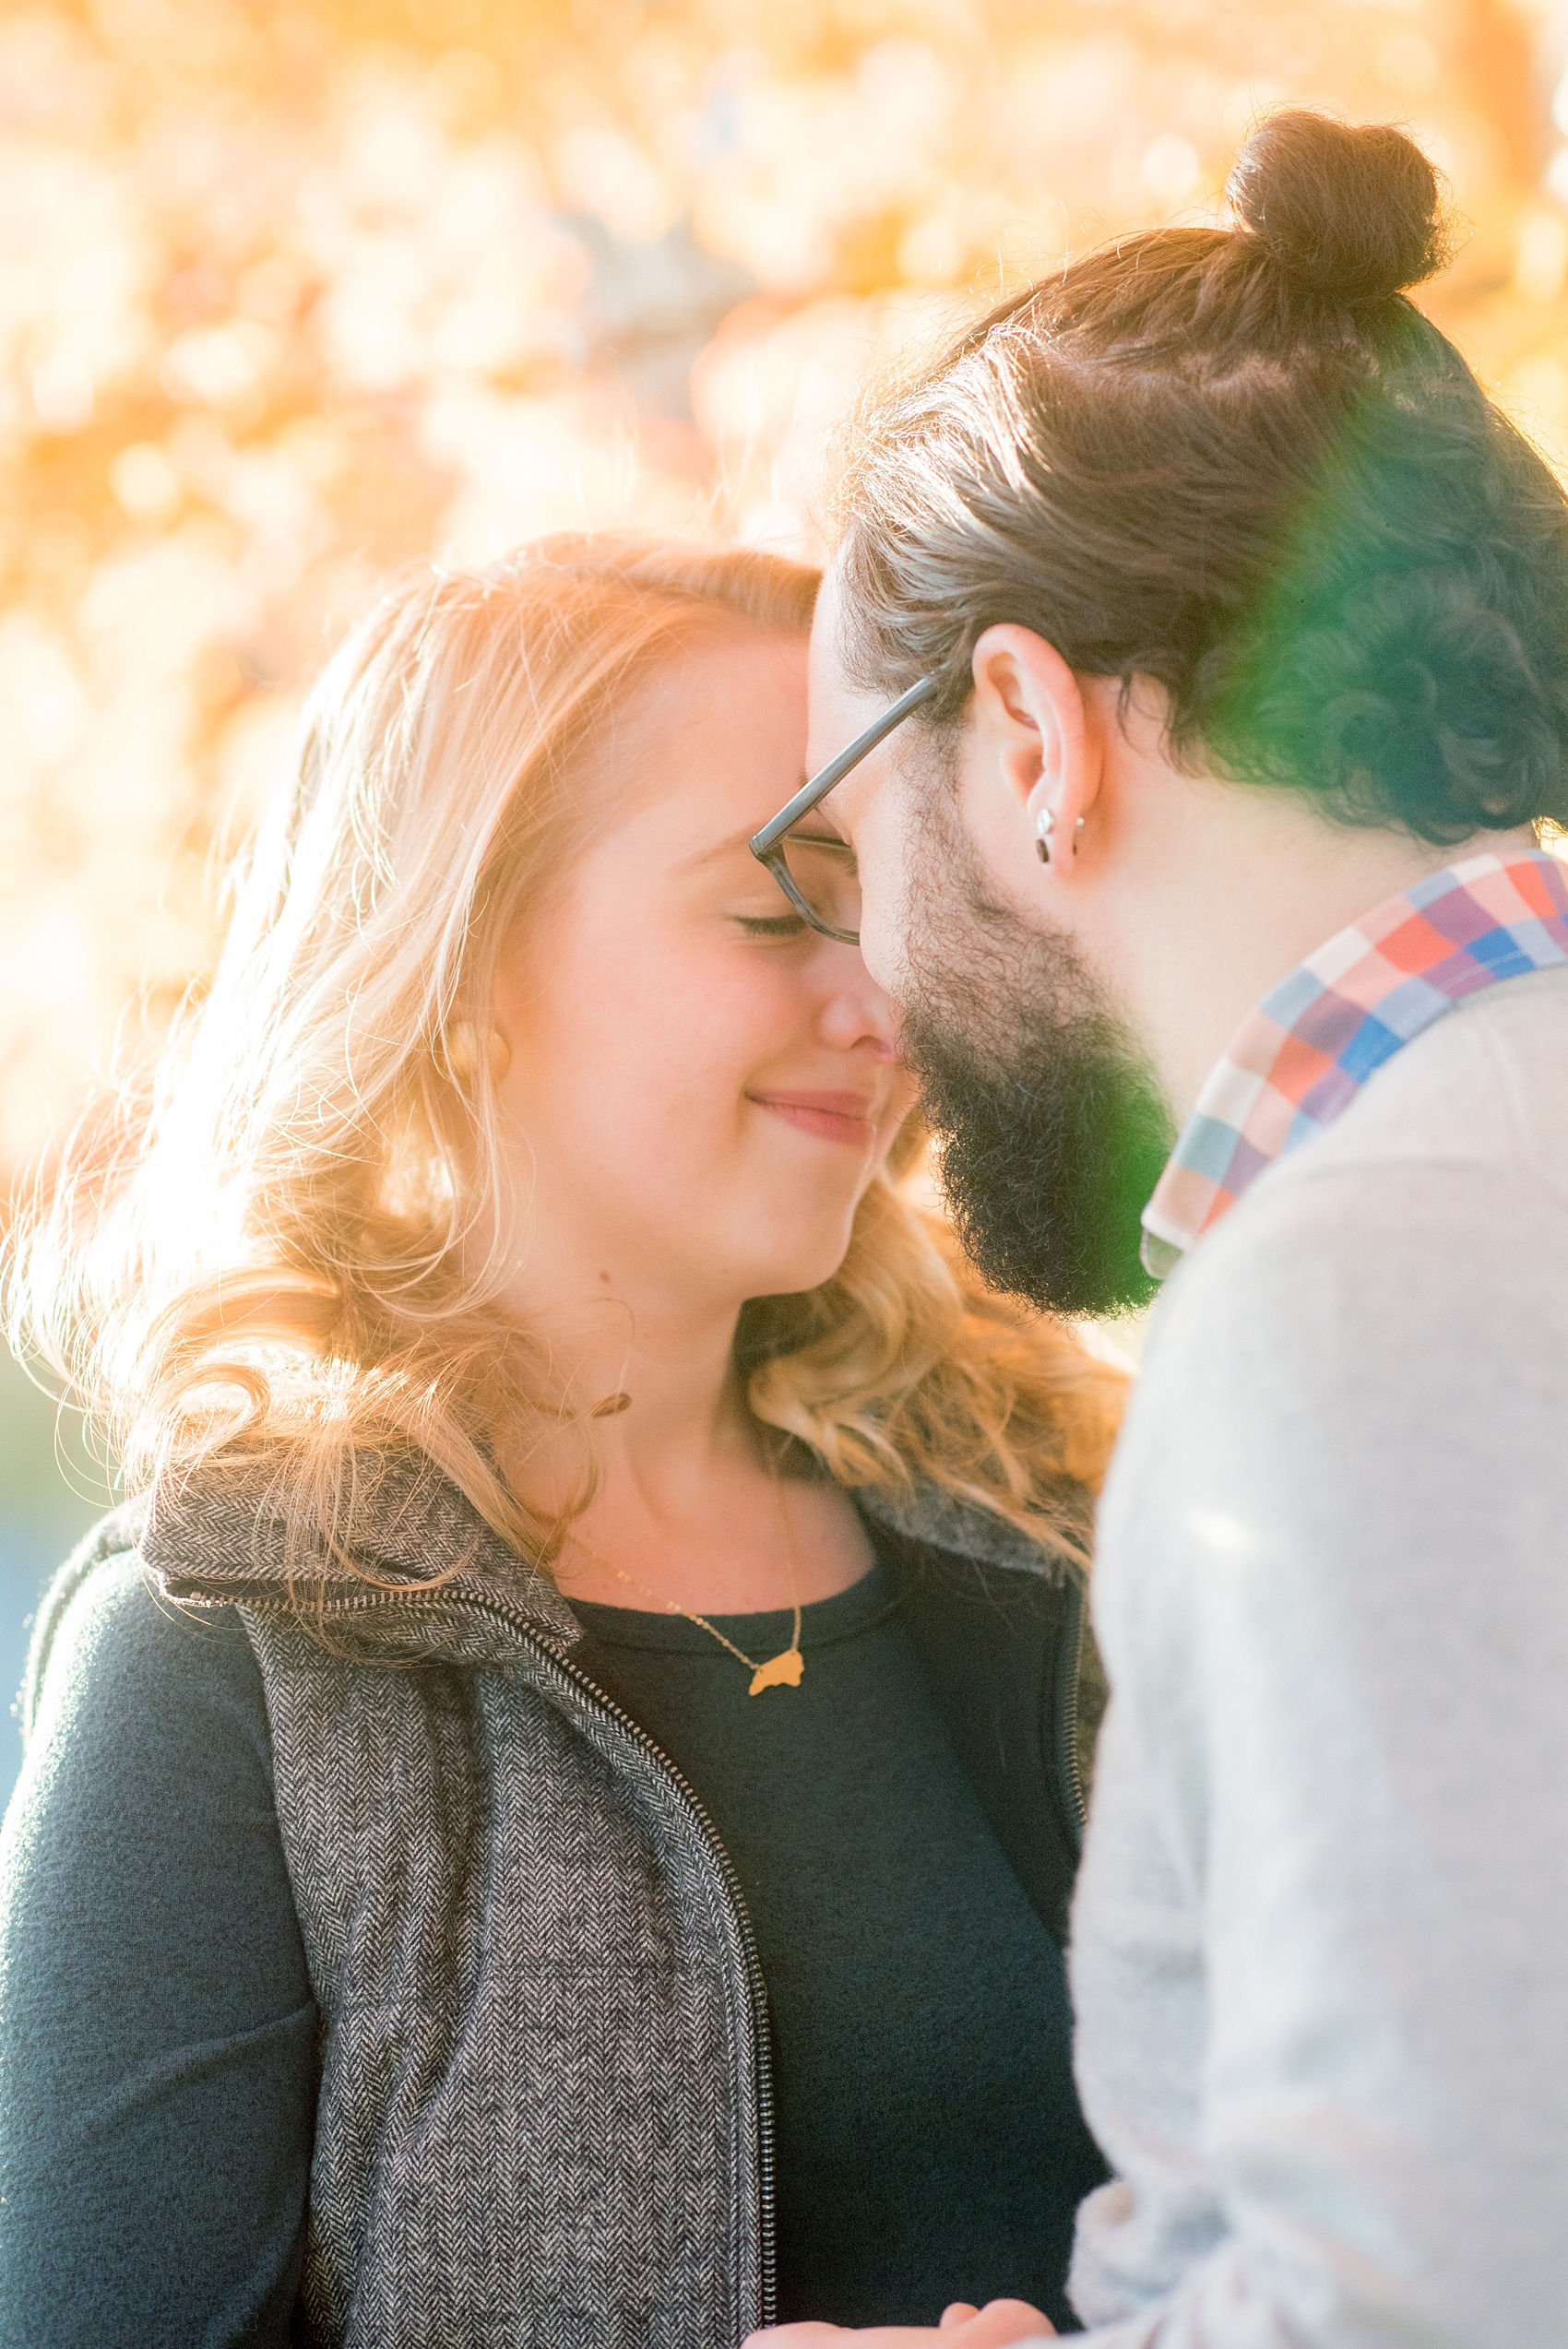 Mikkel Paige Photography photos of a downtown Durham engagement session with a fall leaves and cozy outfits.